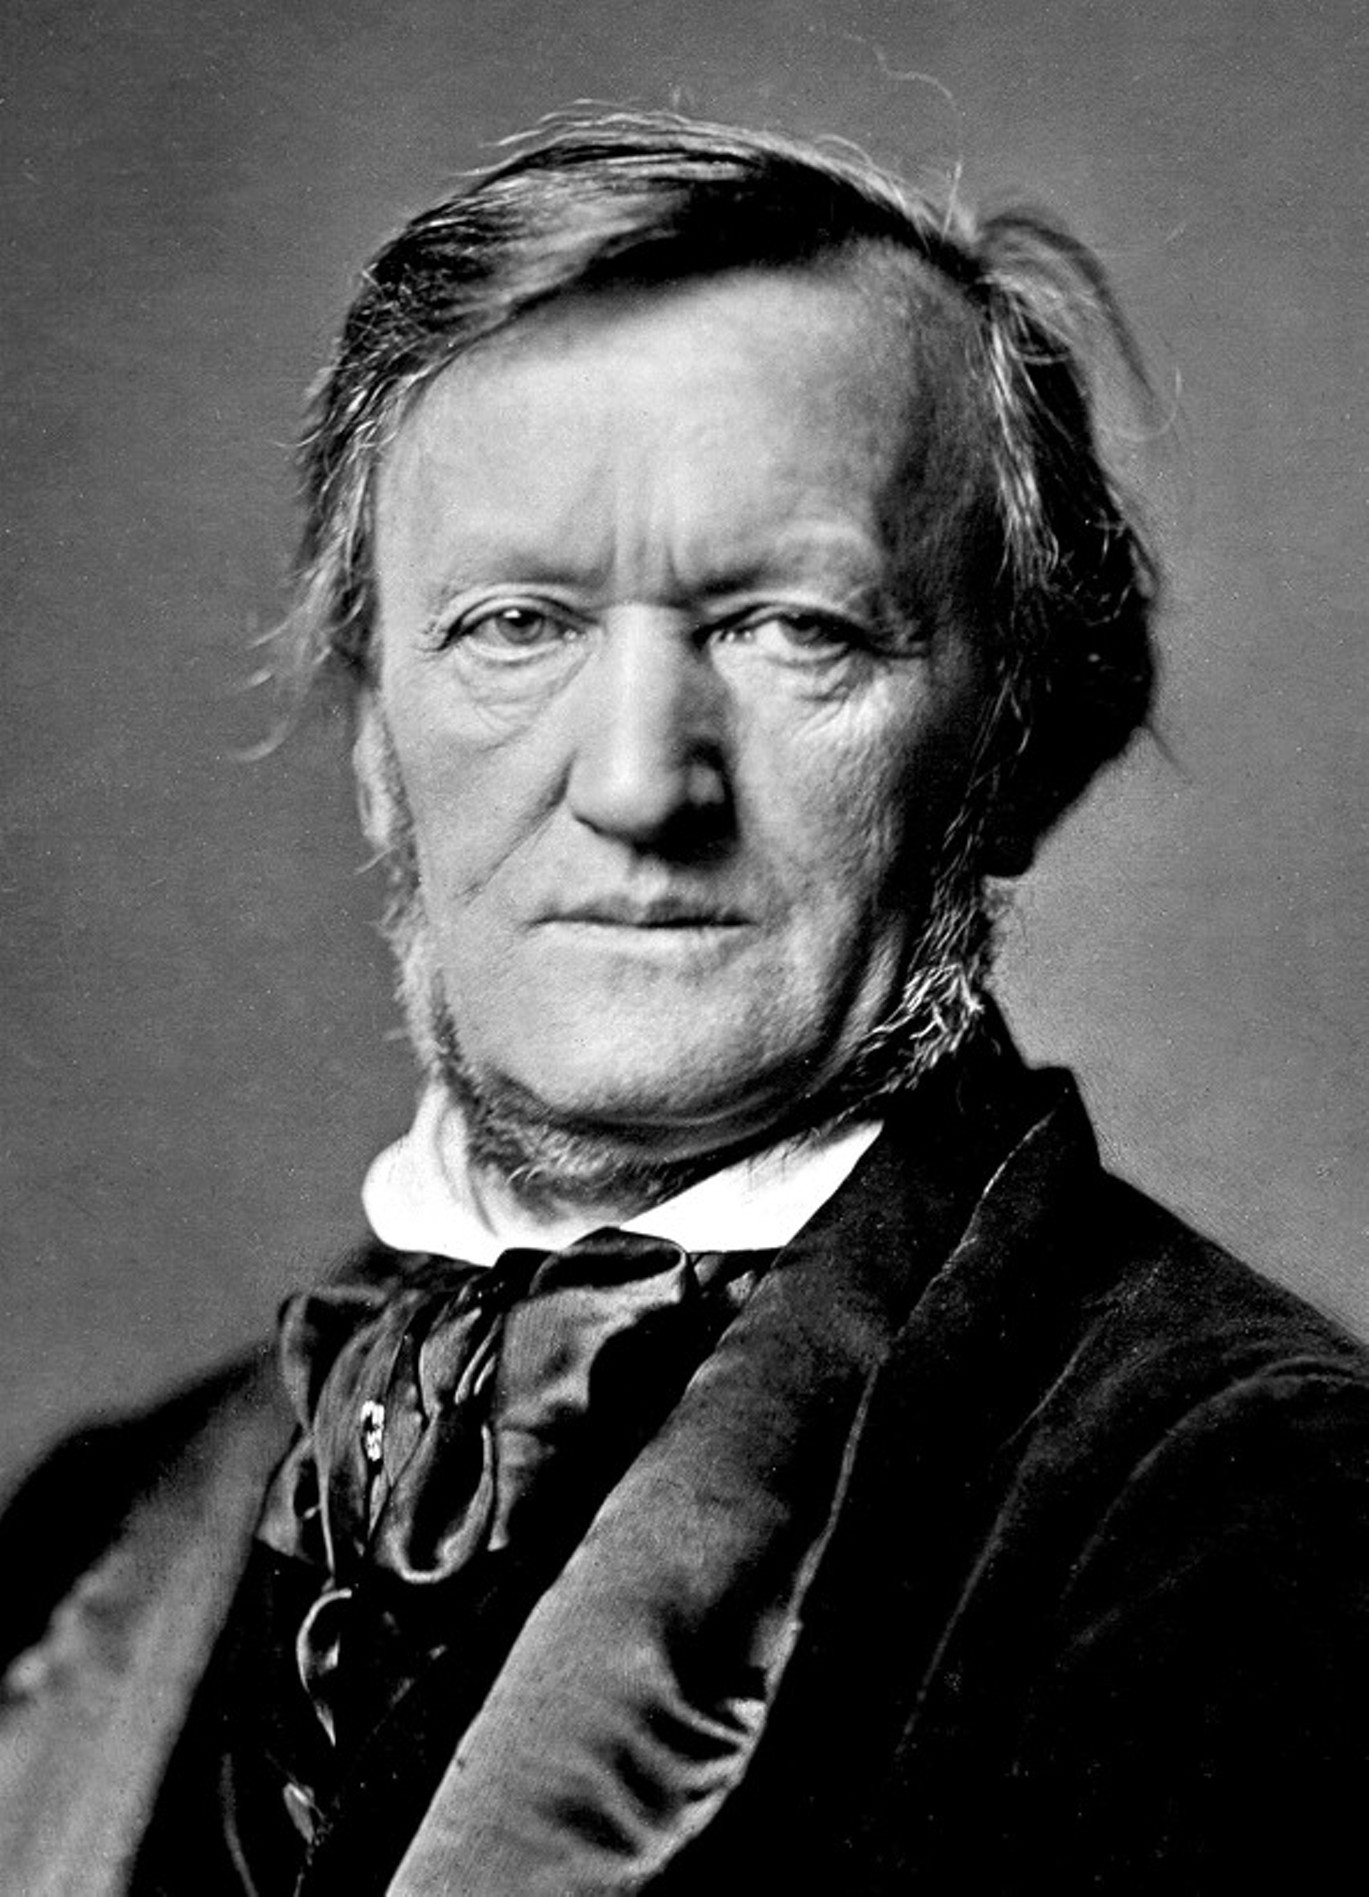 File:RichardWagner.jpg